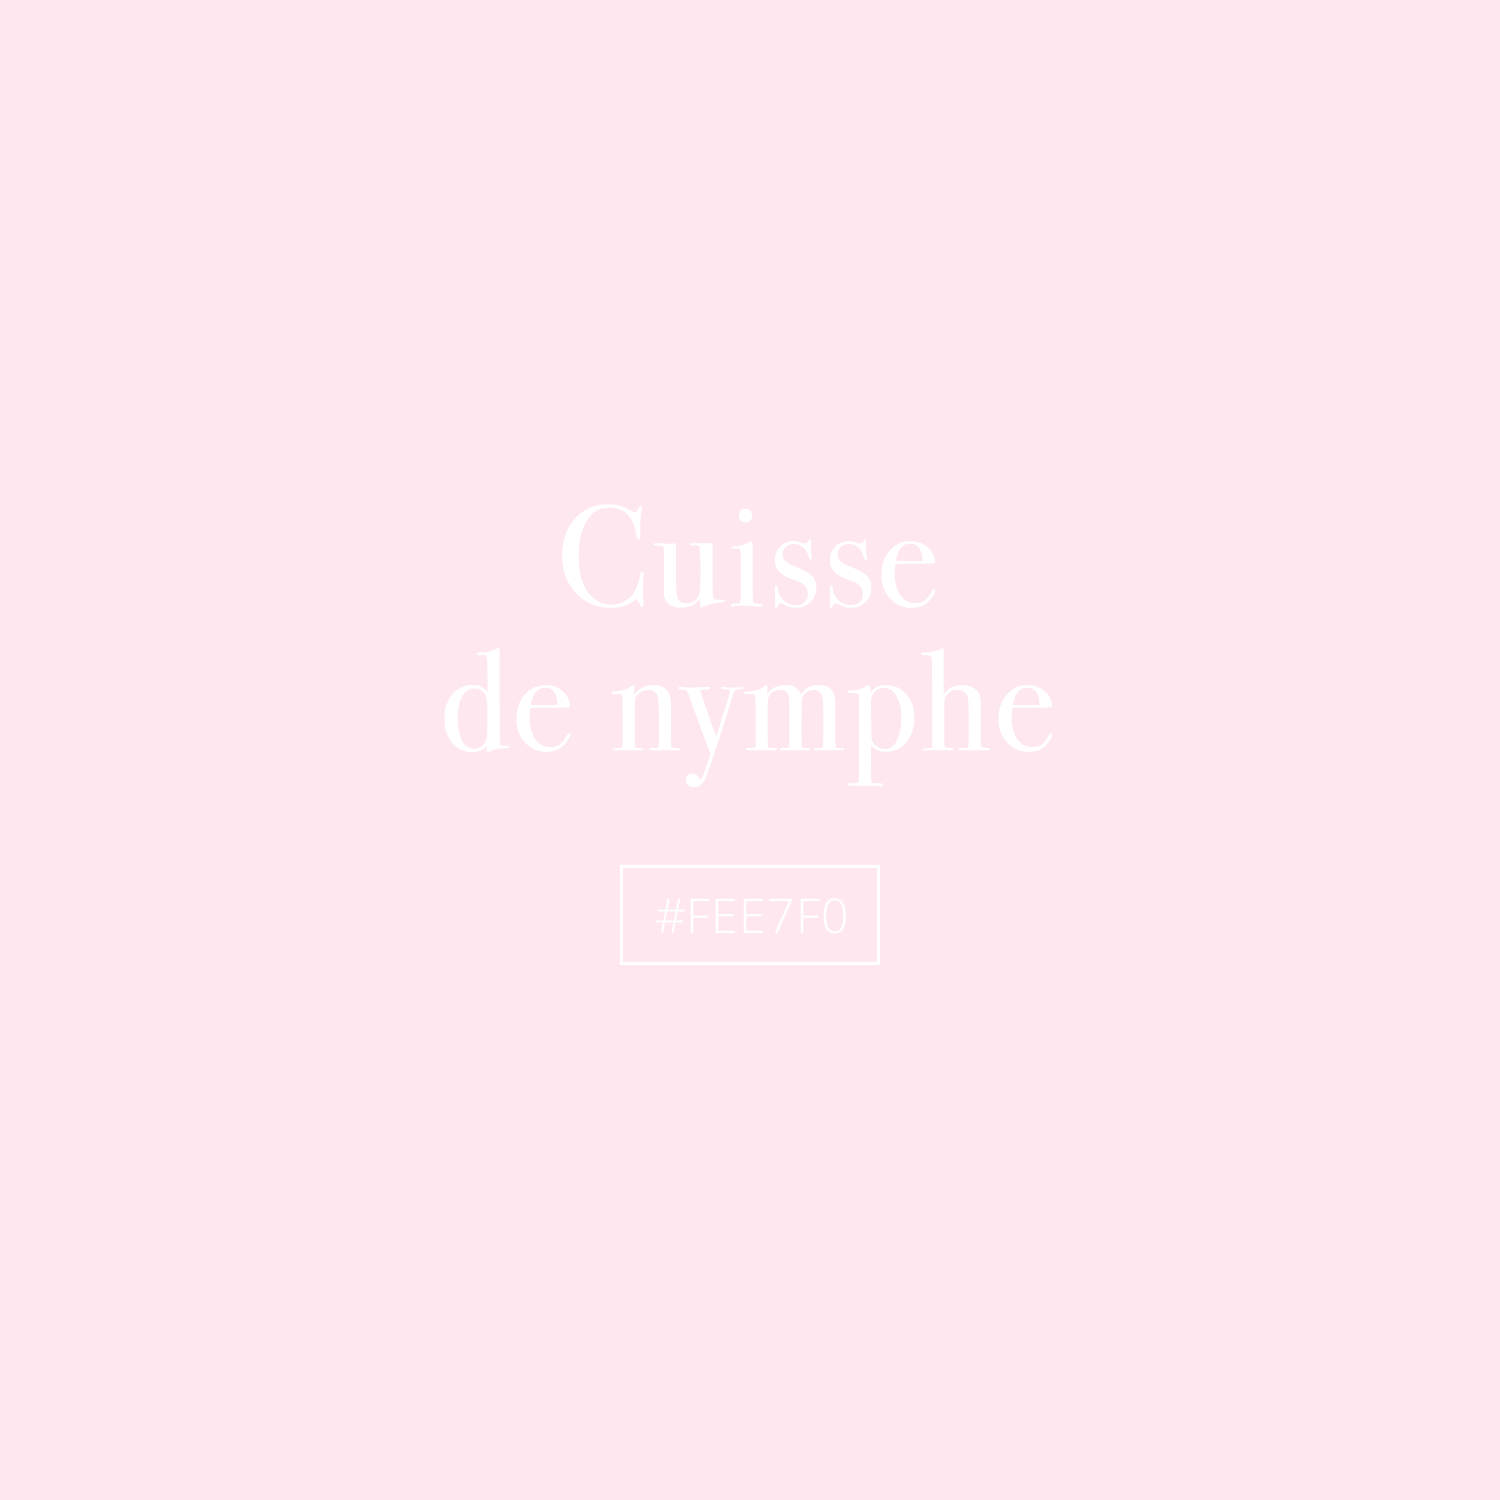 Cuisse de nymphe  / #FEE7F0